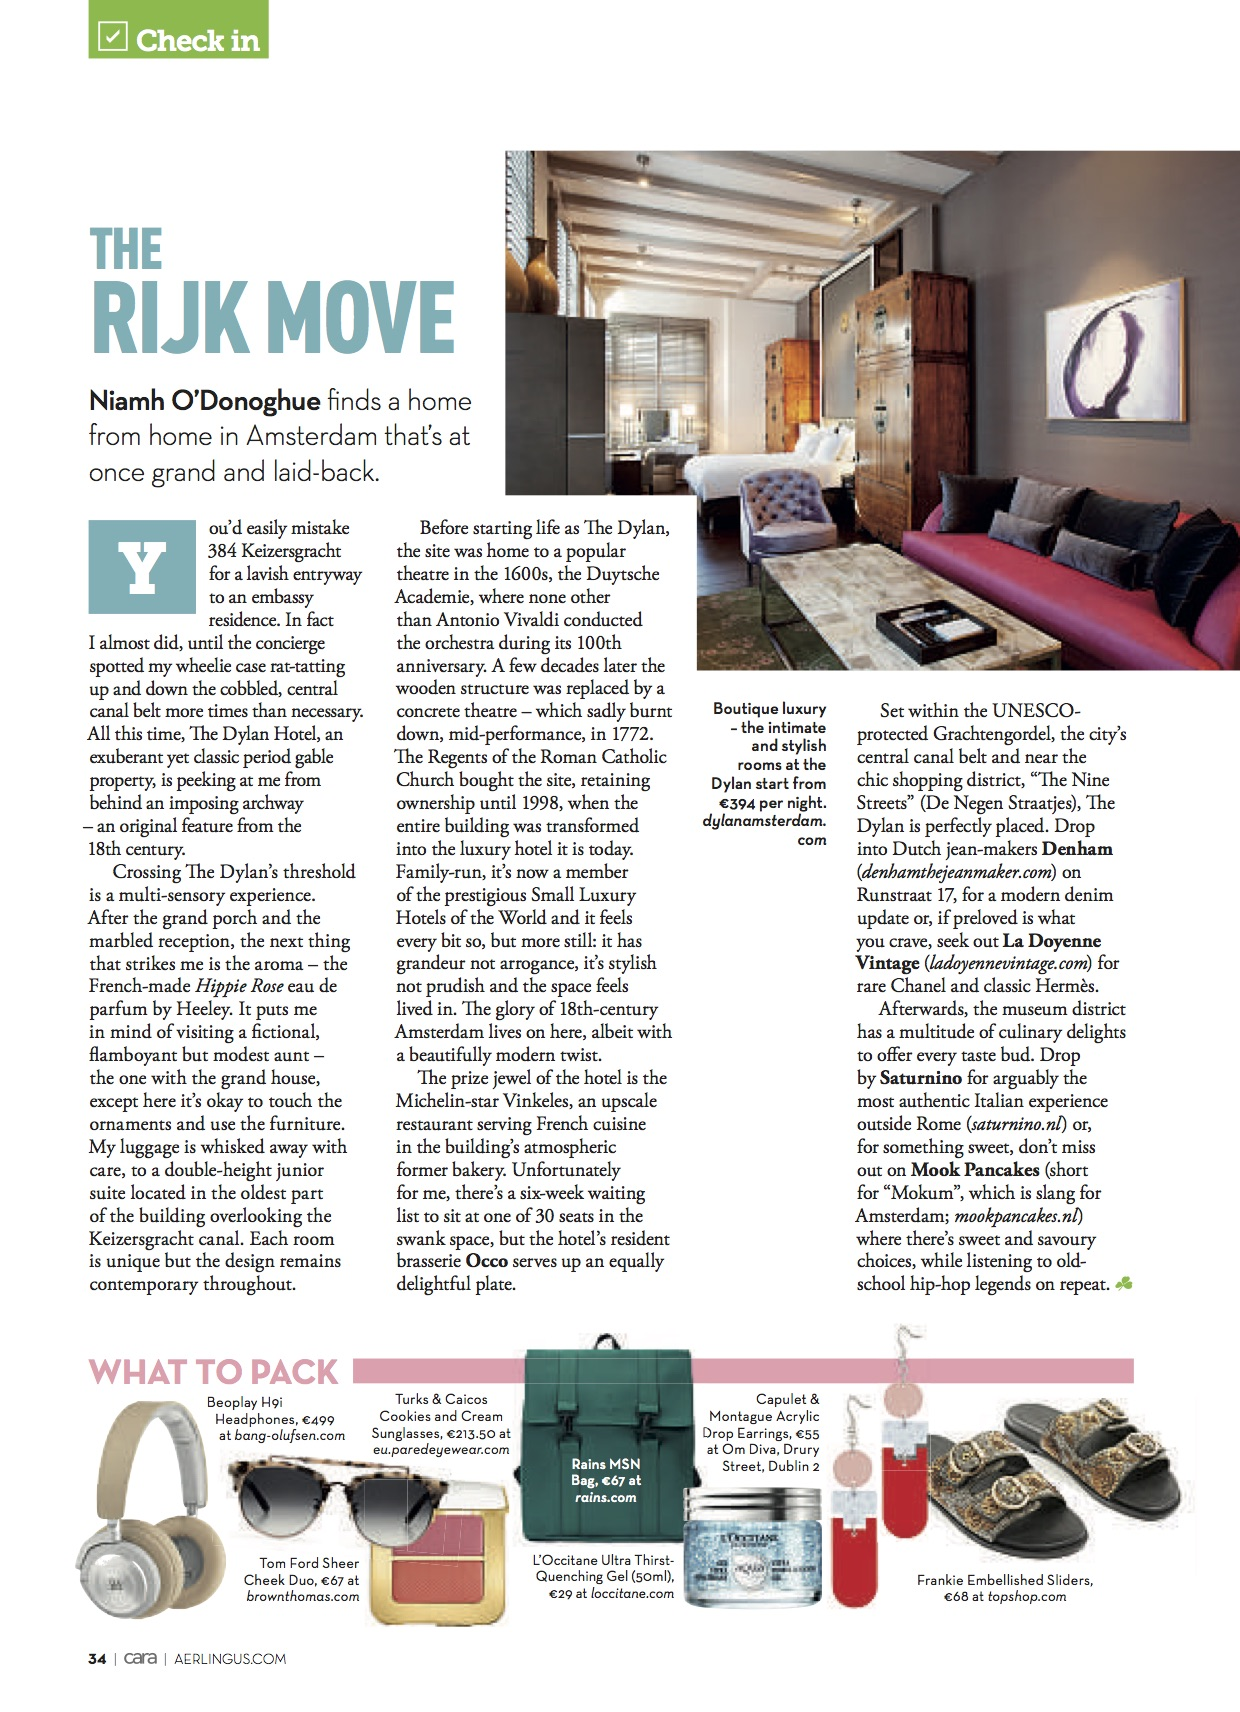 Luxury Amsterdam in the June 2018 issue of CARA in-flight Magazine on Aerlingus